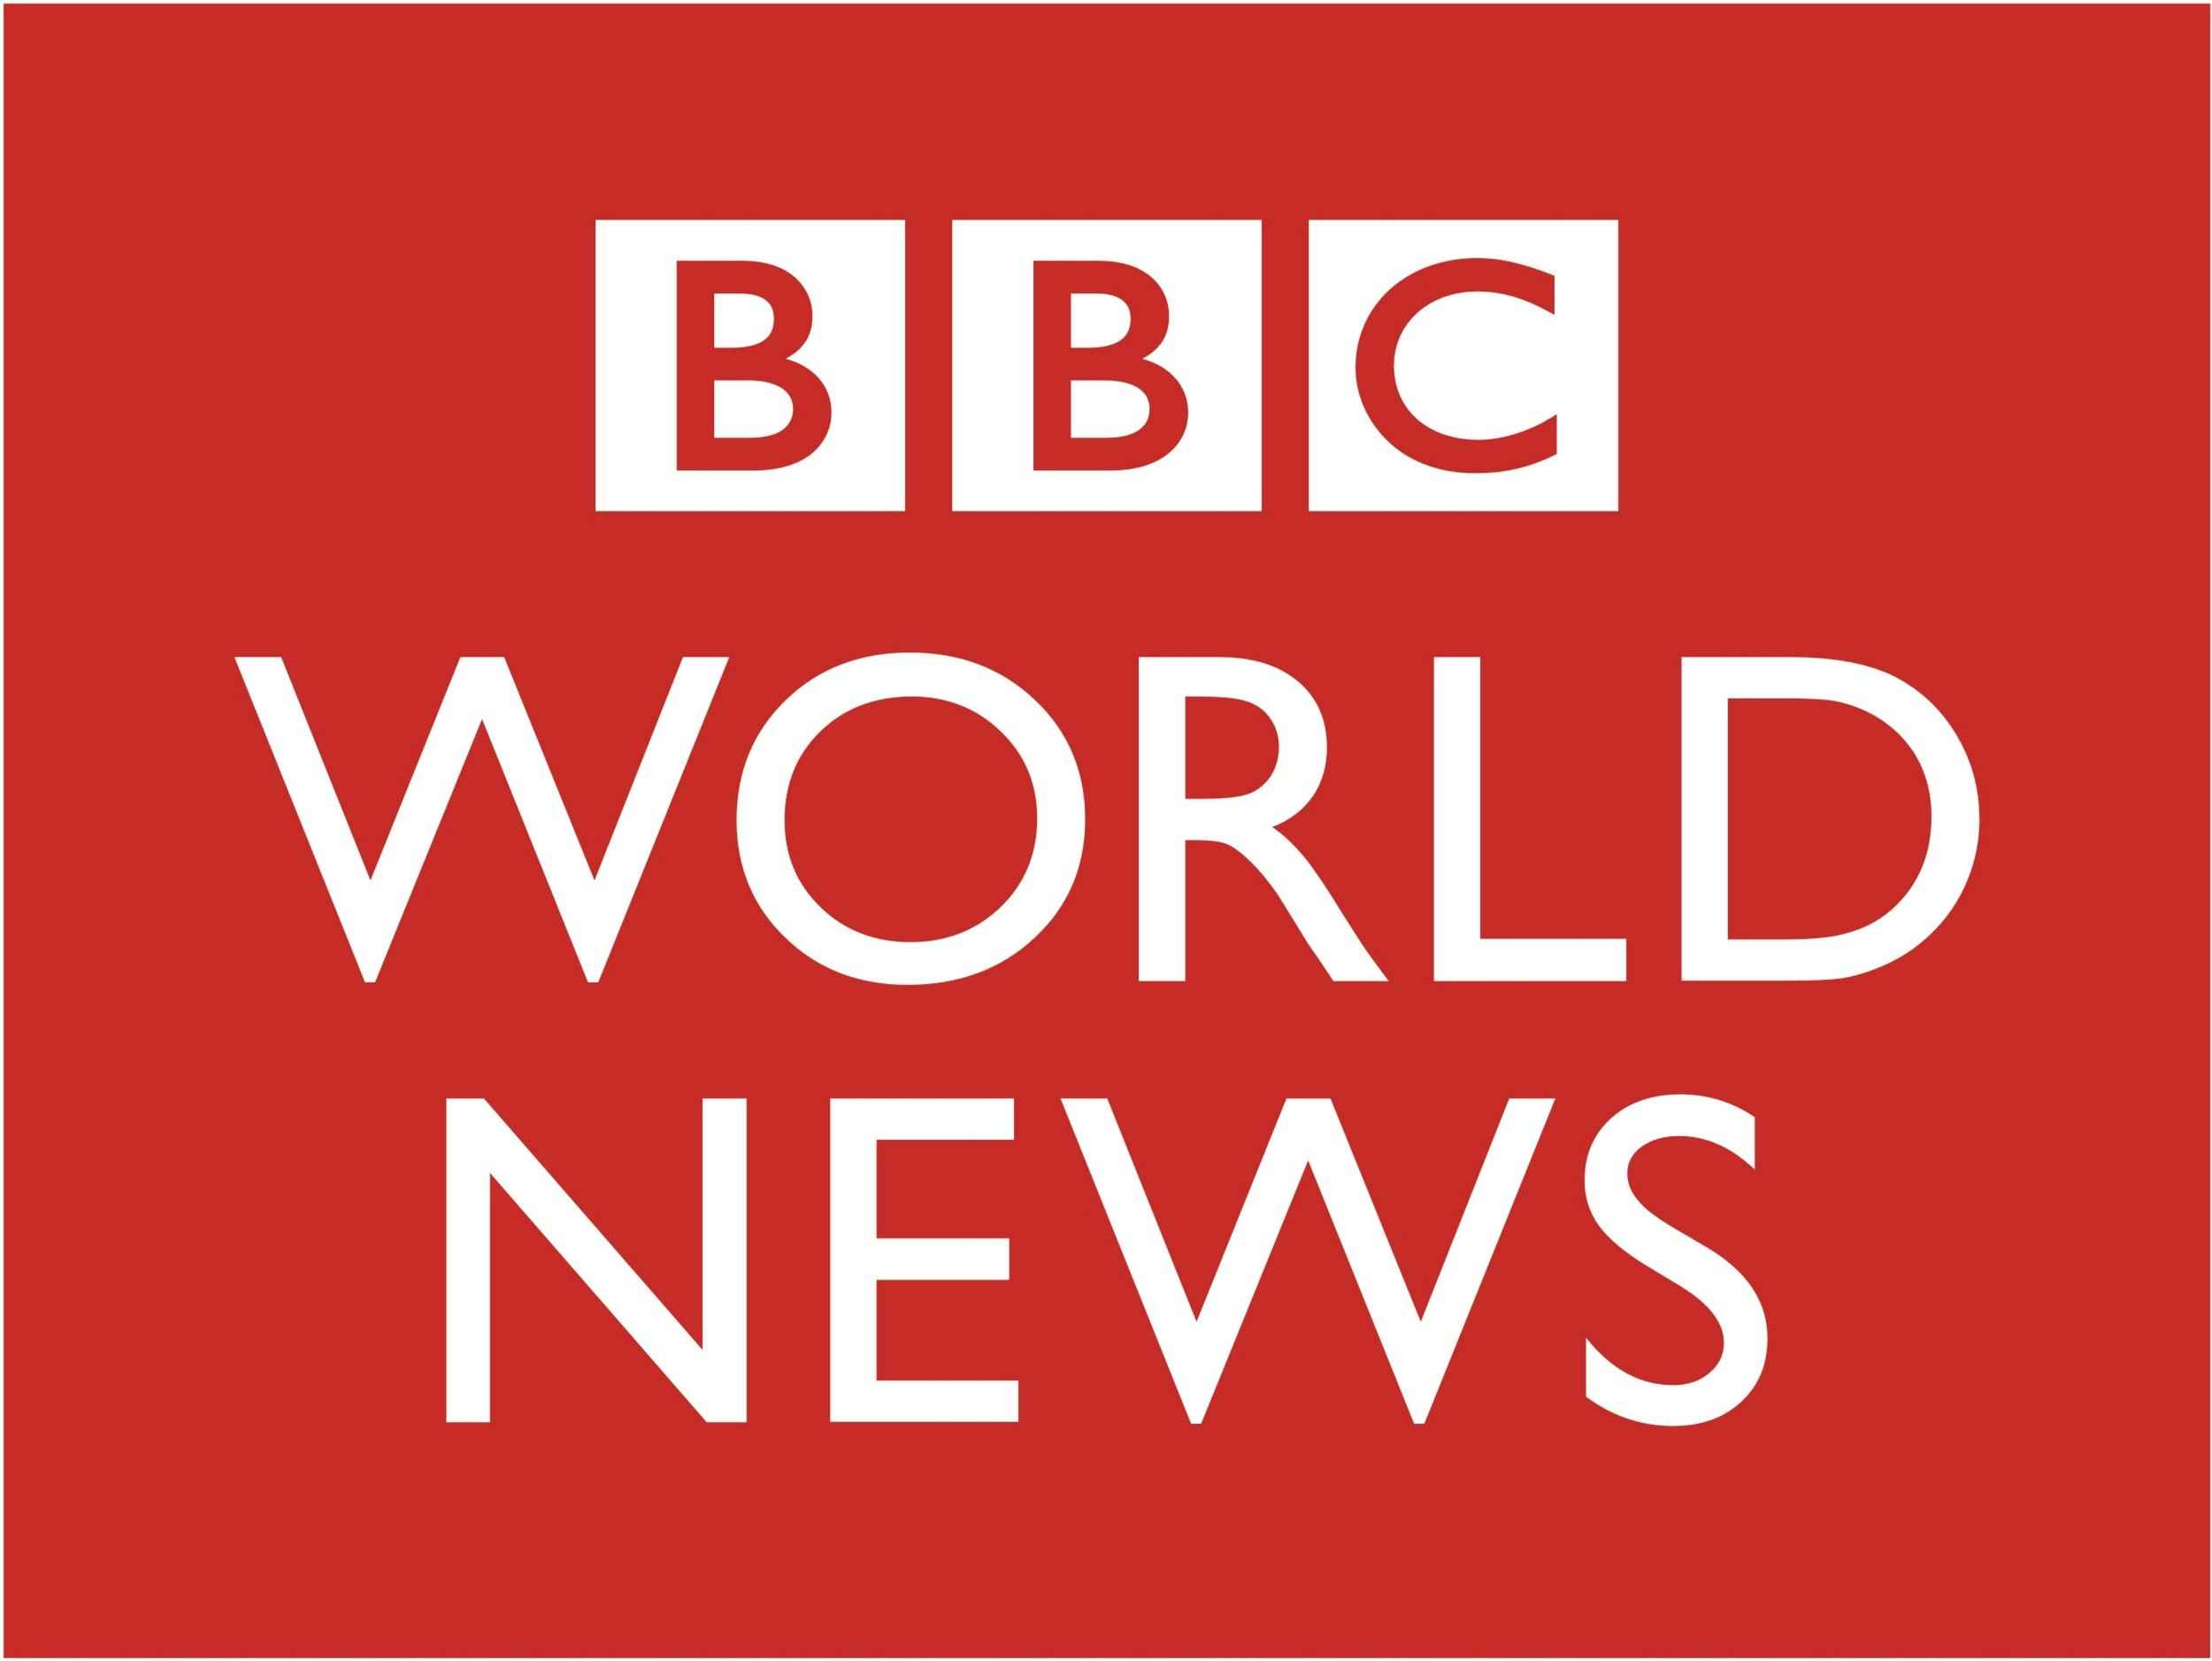 BBC World News Logo Download Vector.